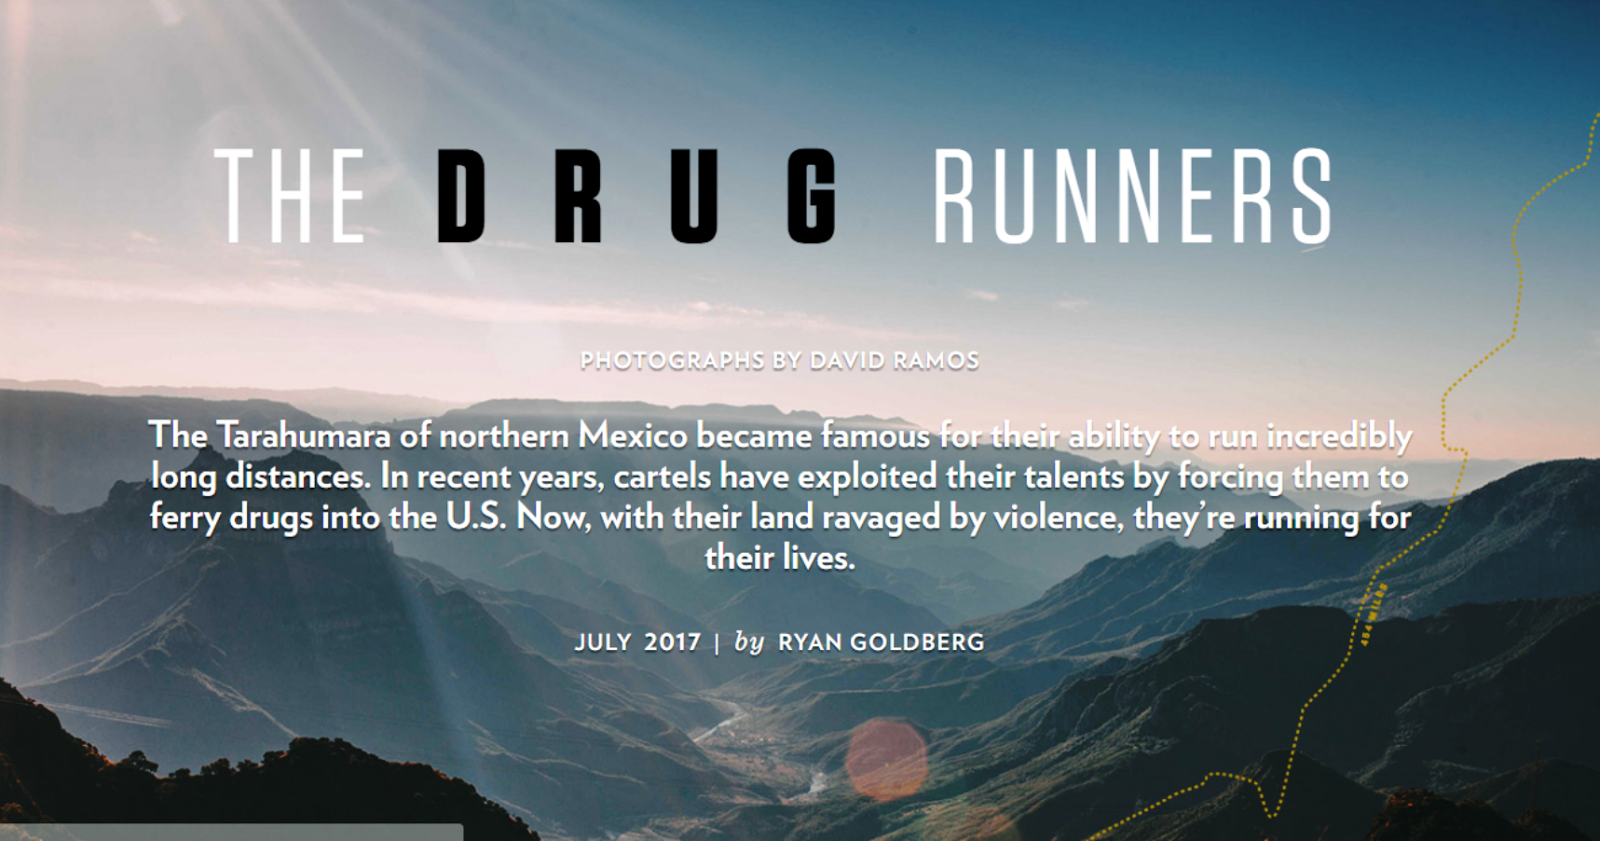 Siskiyoukid for borderland beat republished from texas monthly by ryan goldberg photographs by david ramos